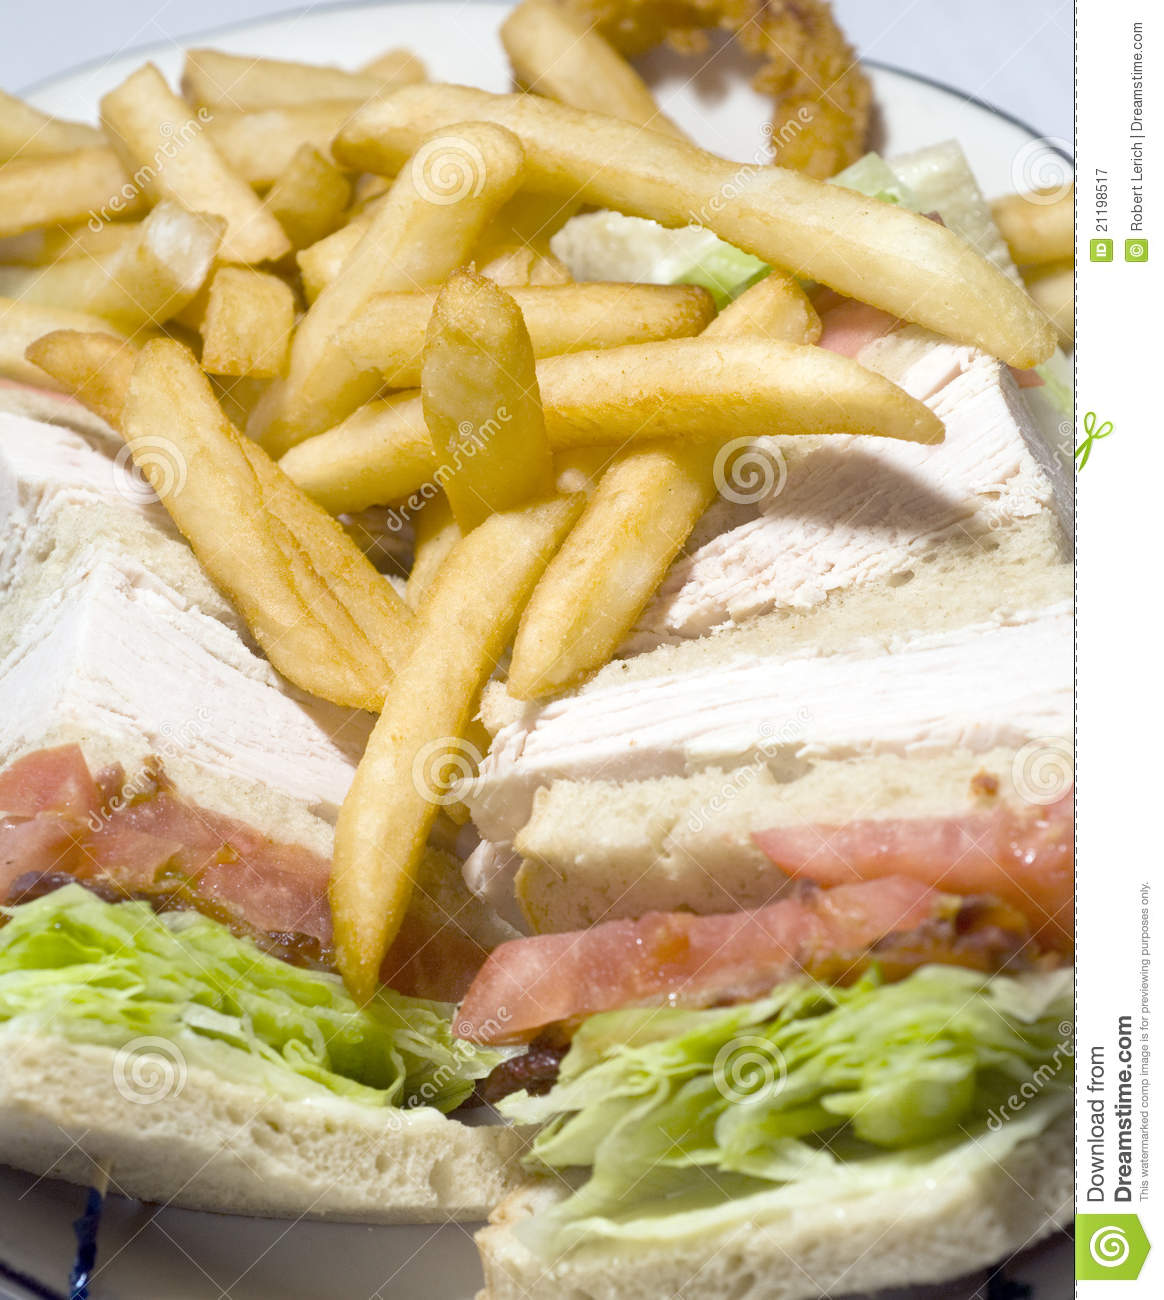 Turkey club sandwich french fries